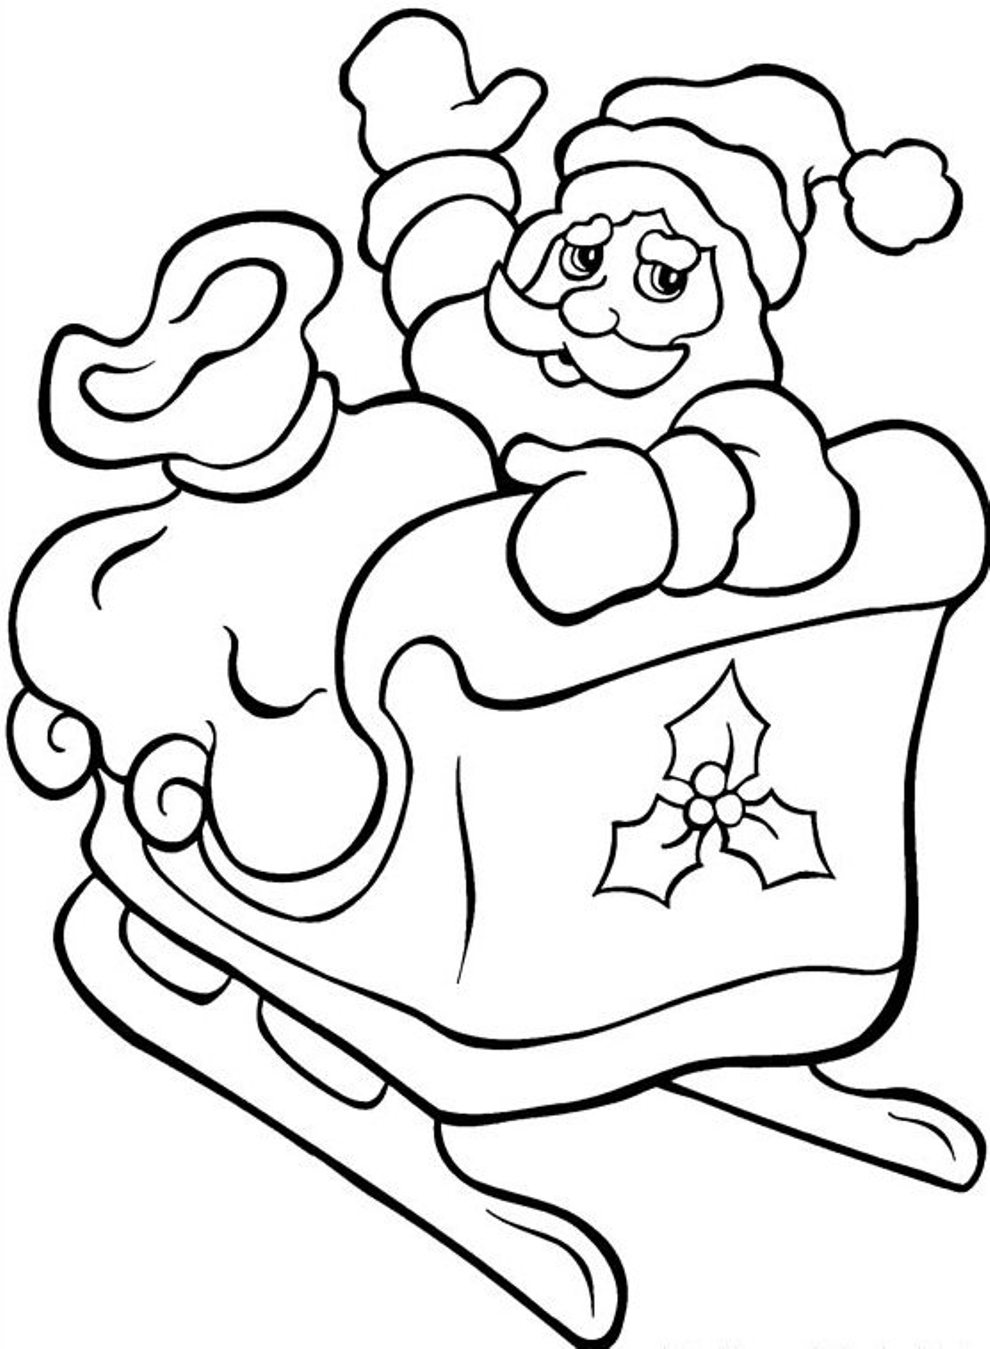 santa in a sleigh coloring page santas sleigh drawing at getdrawings free download coloring page in sleigh santa a